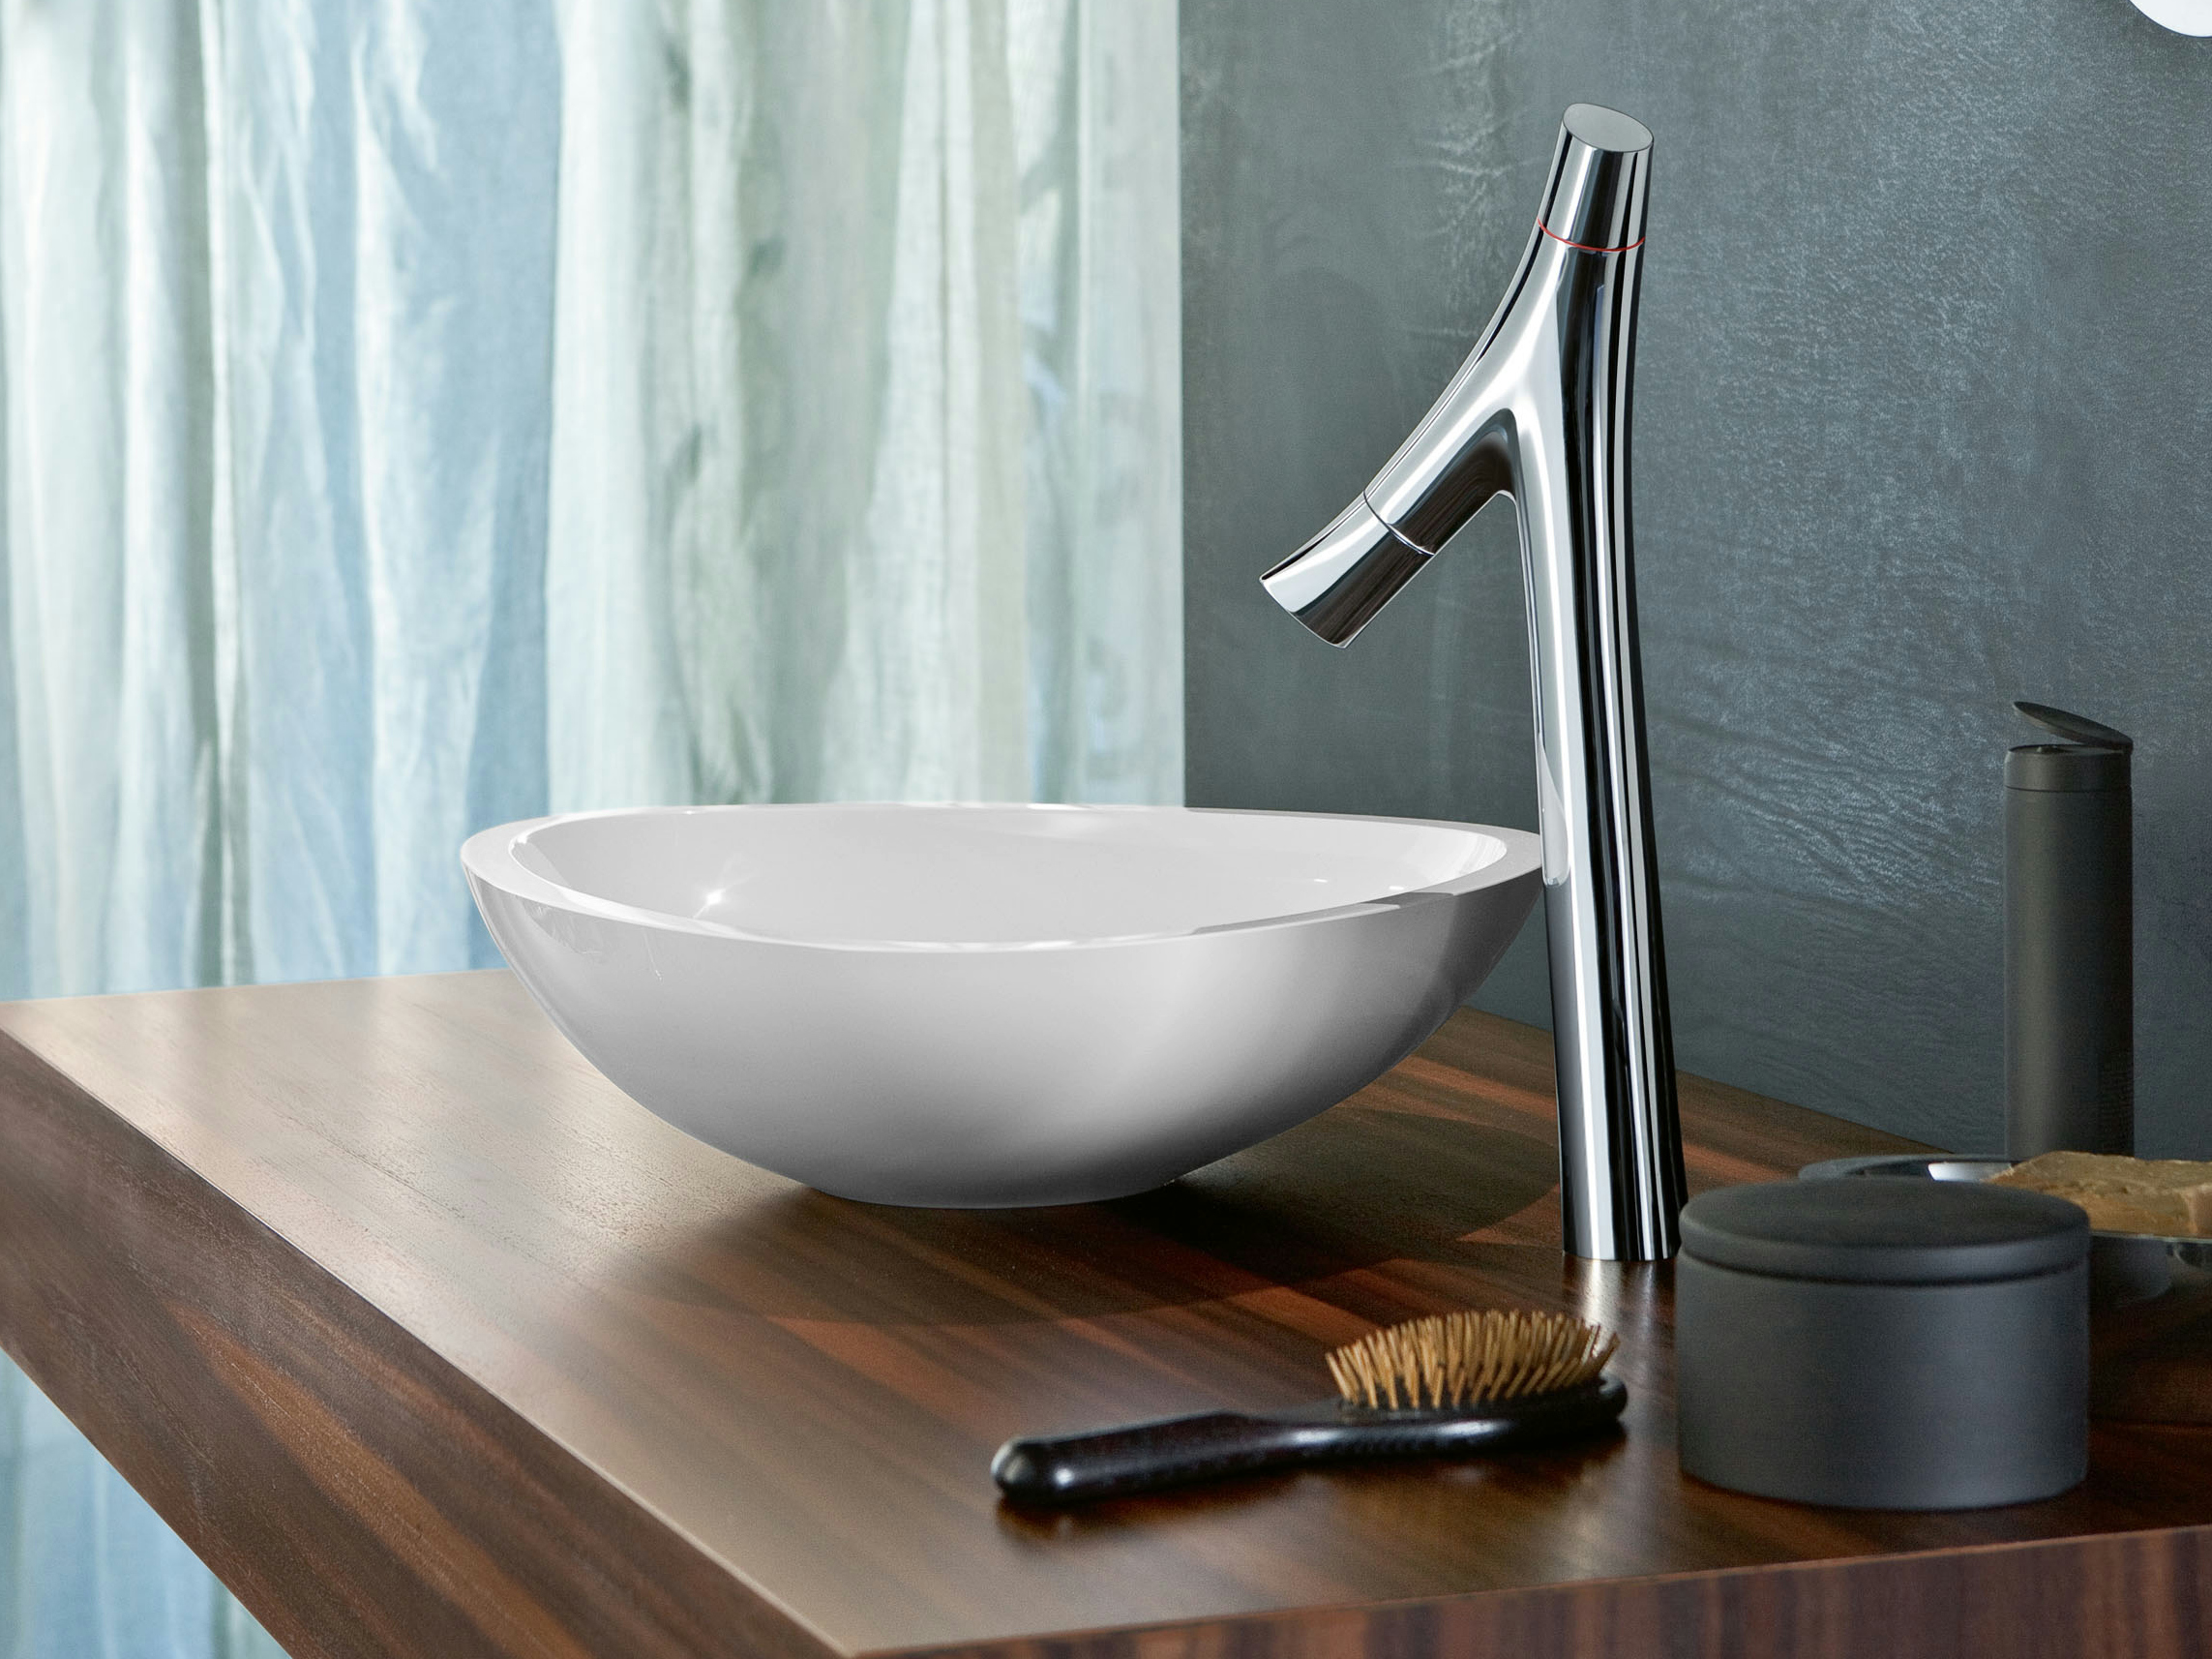 axor starck organic countertop washbasin mixer by hansgrohe design philippe starck. Black Bedroom Furniture Sets. Home Design Ideas